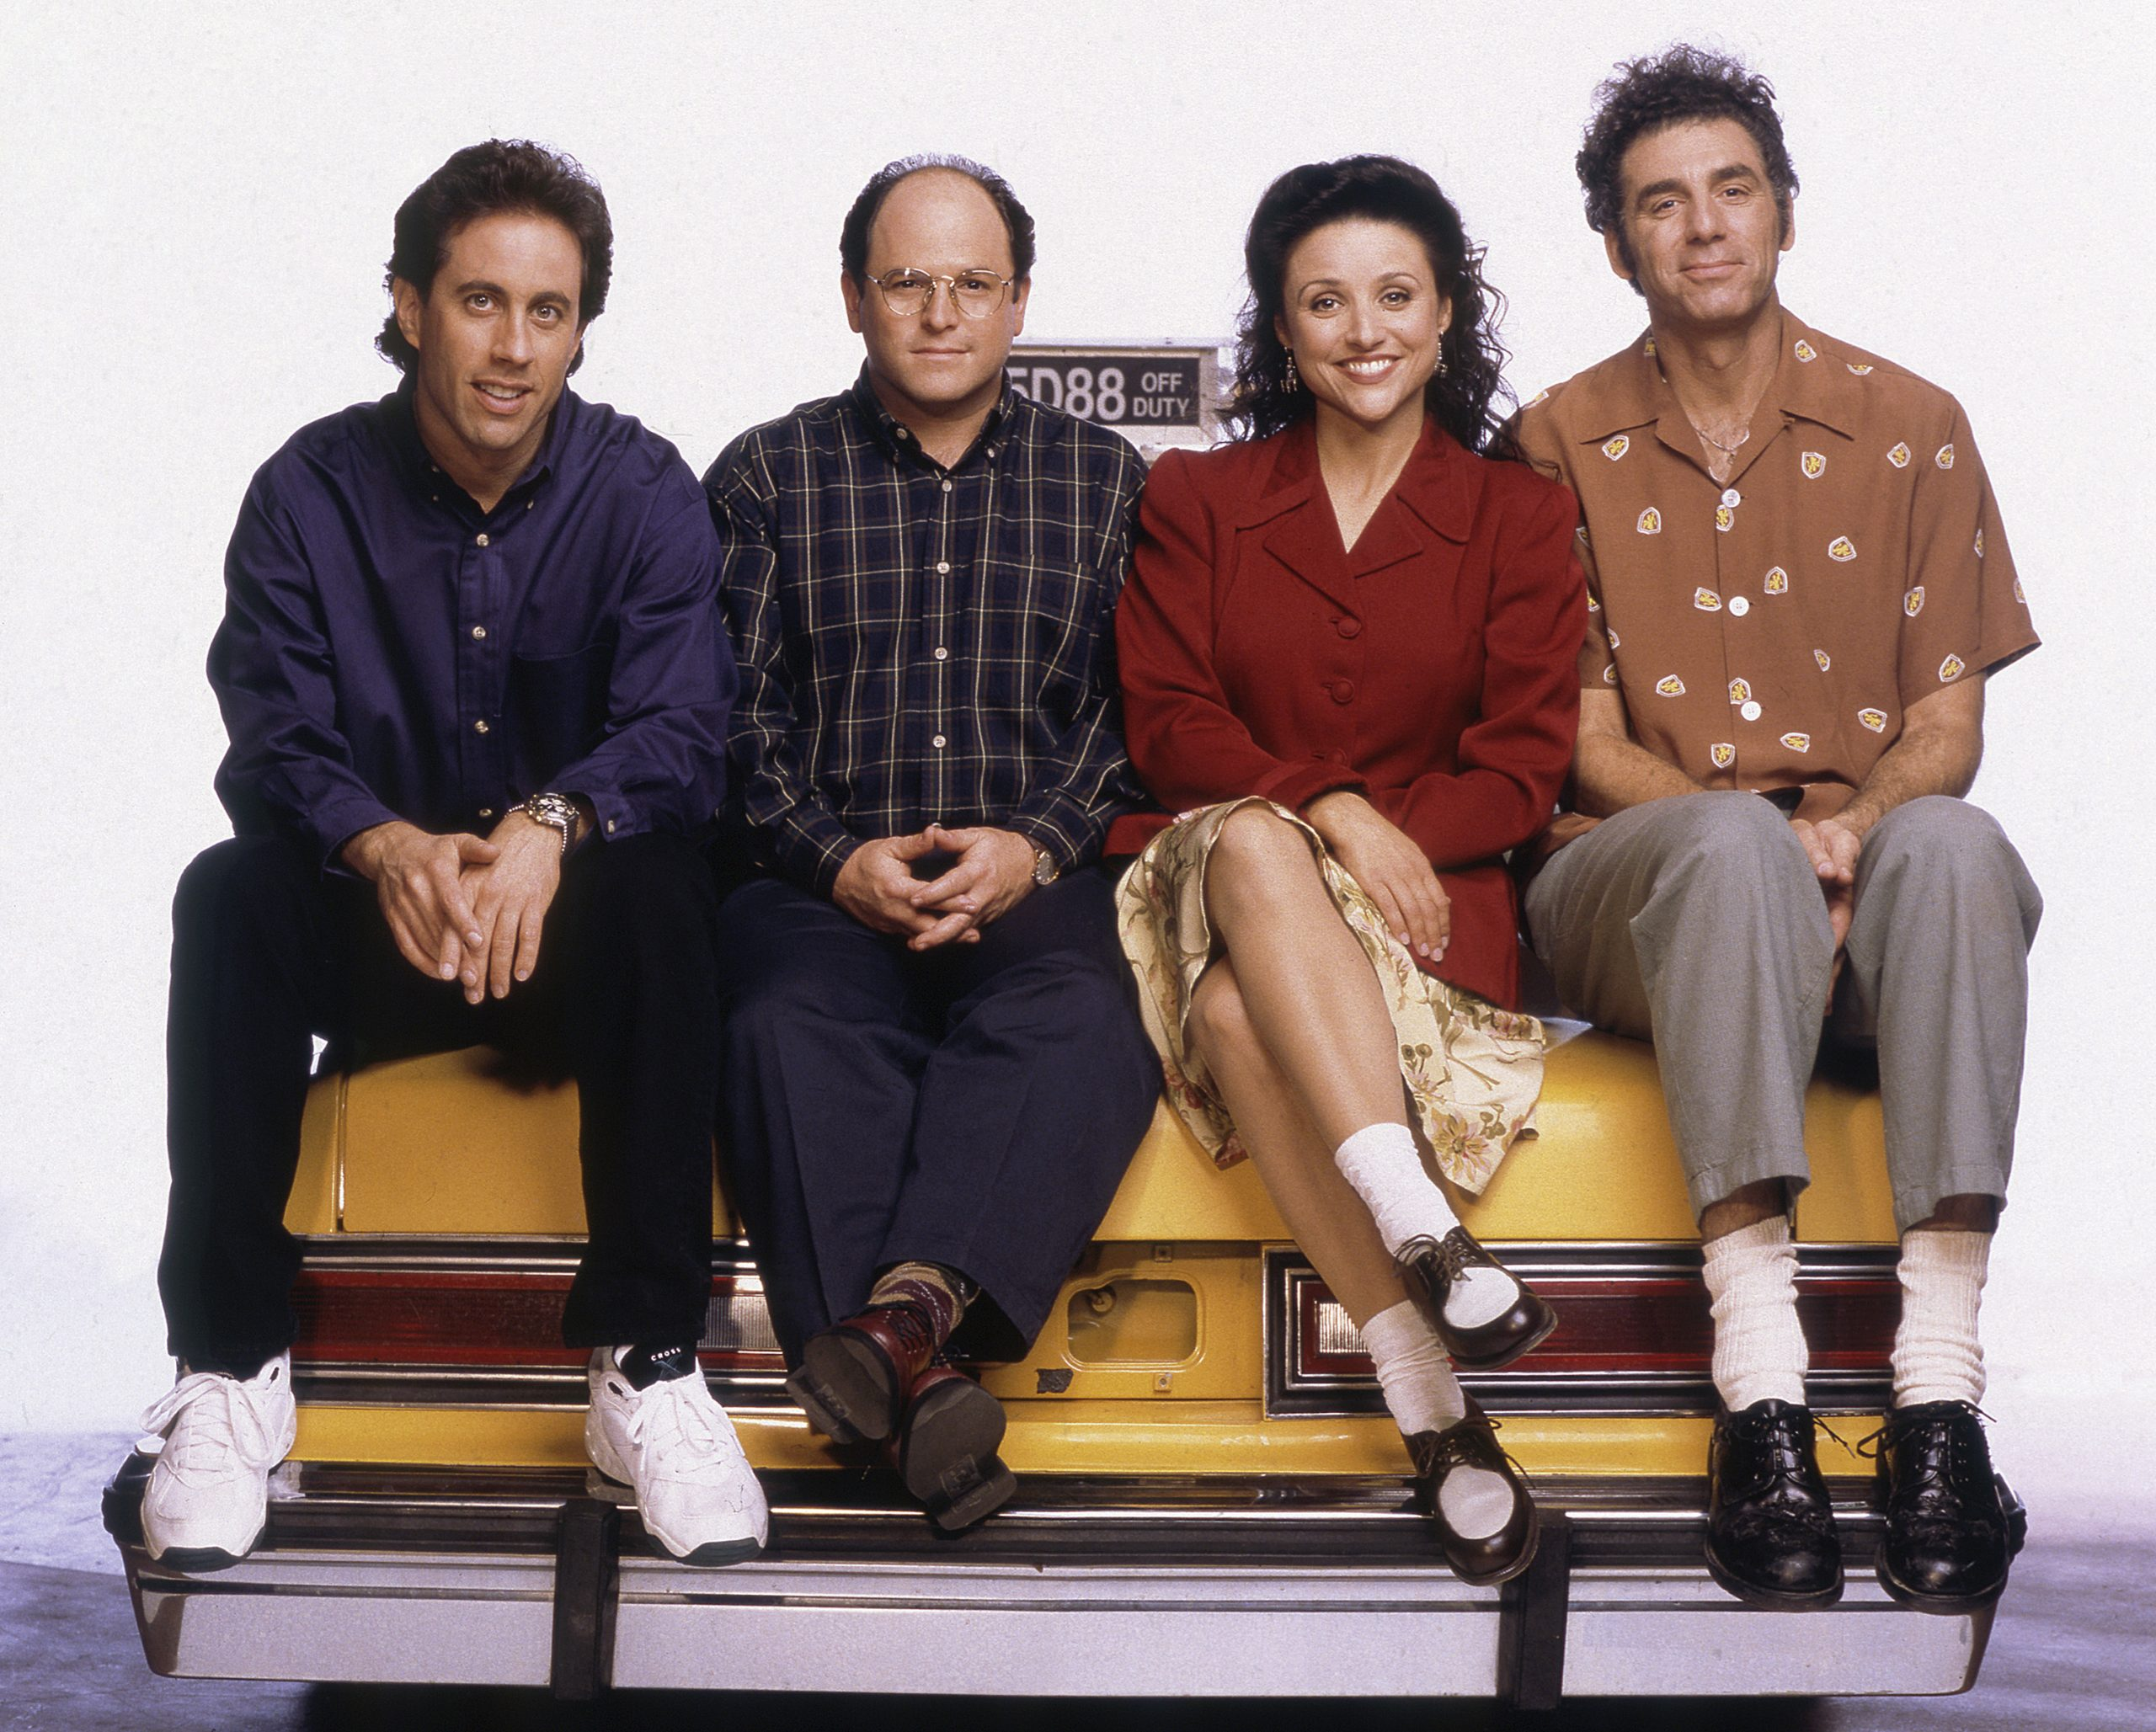 'Seinfeld' Star Jerry Seinfeld Reveals His Most Hated Episode of the Series — 'I Felt Very Uncomfortable'